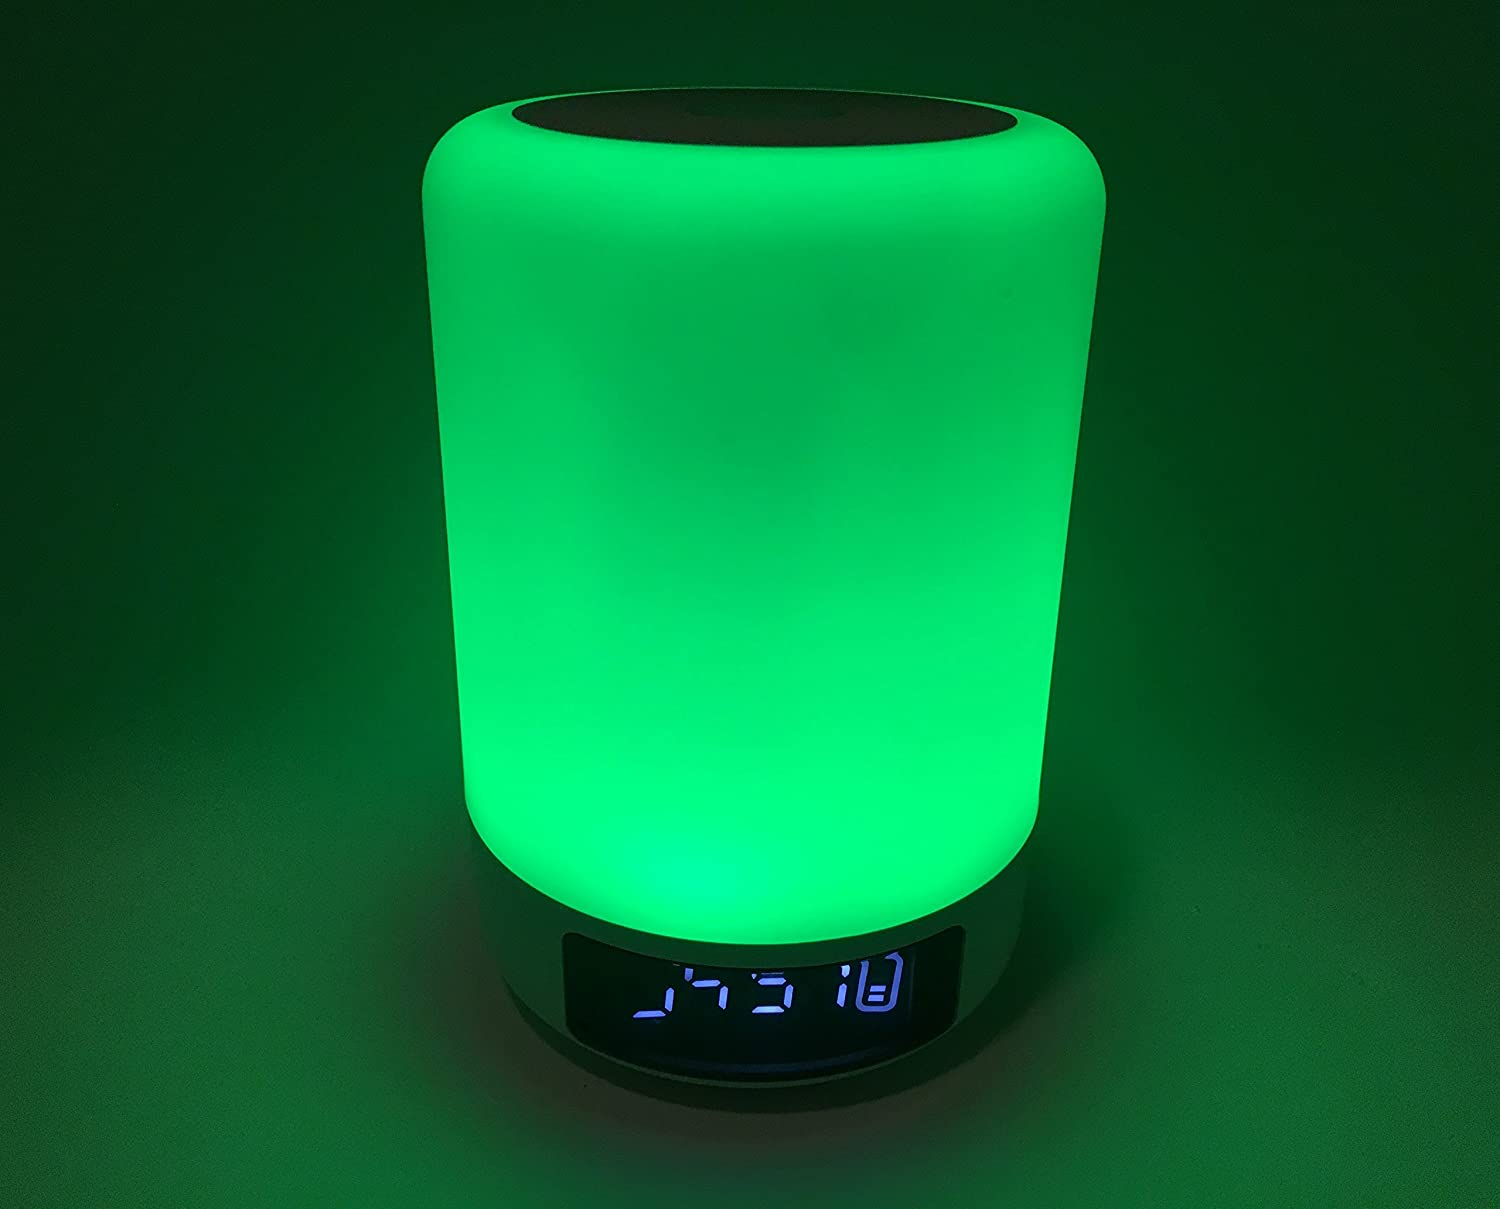 Bedside Table Lamp Alarm clock Portable Bluetooth Speakers Hands Free Night Light Dimmable Touch Sensor MP3 player LED Desk Lamp Bedside Table Lamp Color Changing Lamp DENT Products Upgraded Version